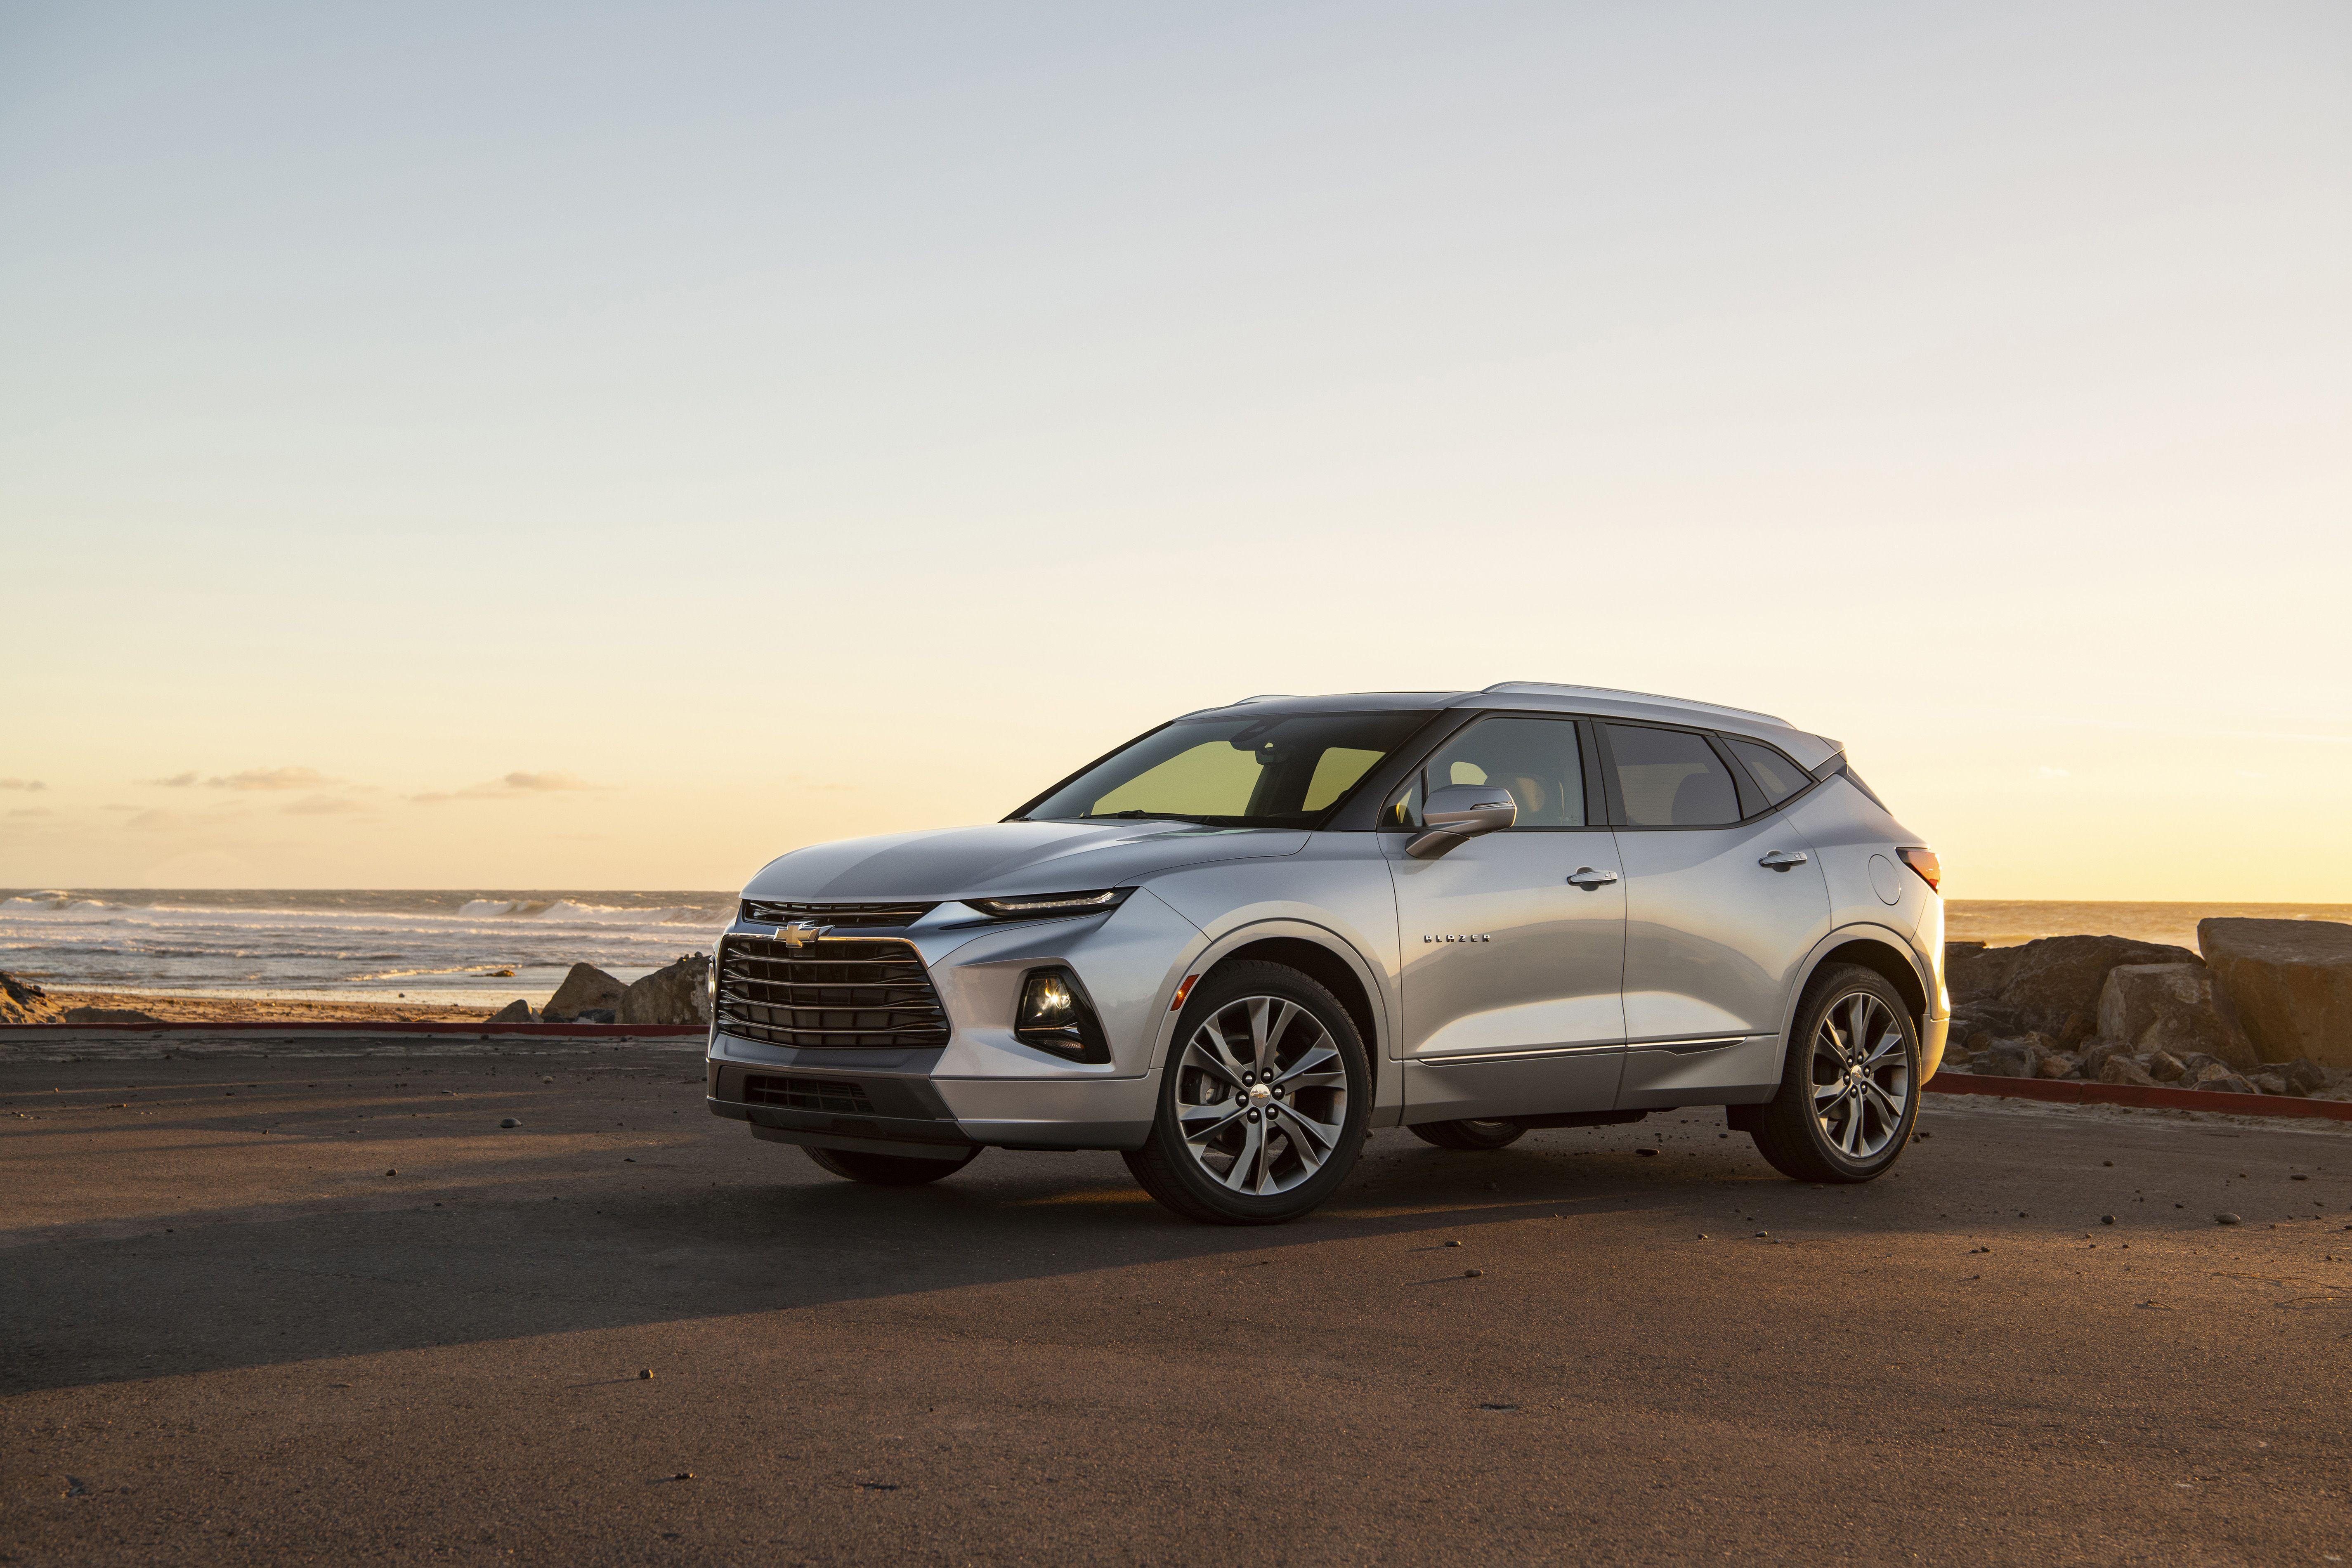 2020 Chevy Blazer Redesign